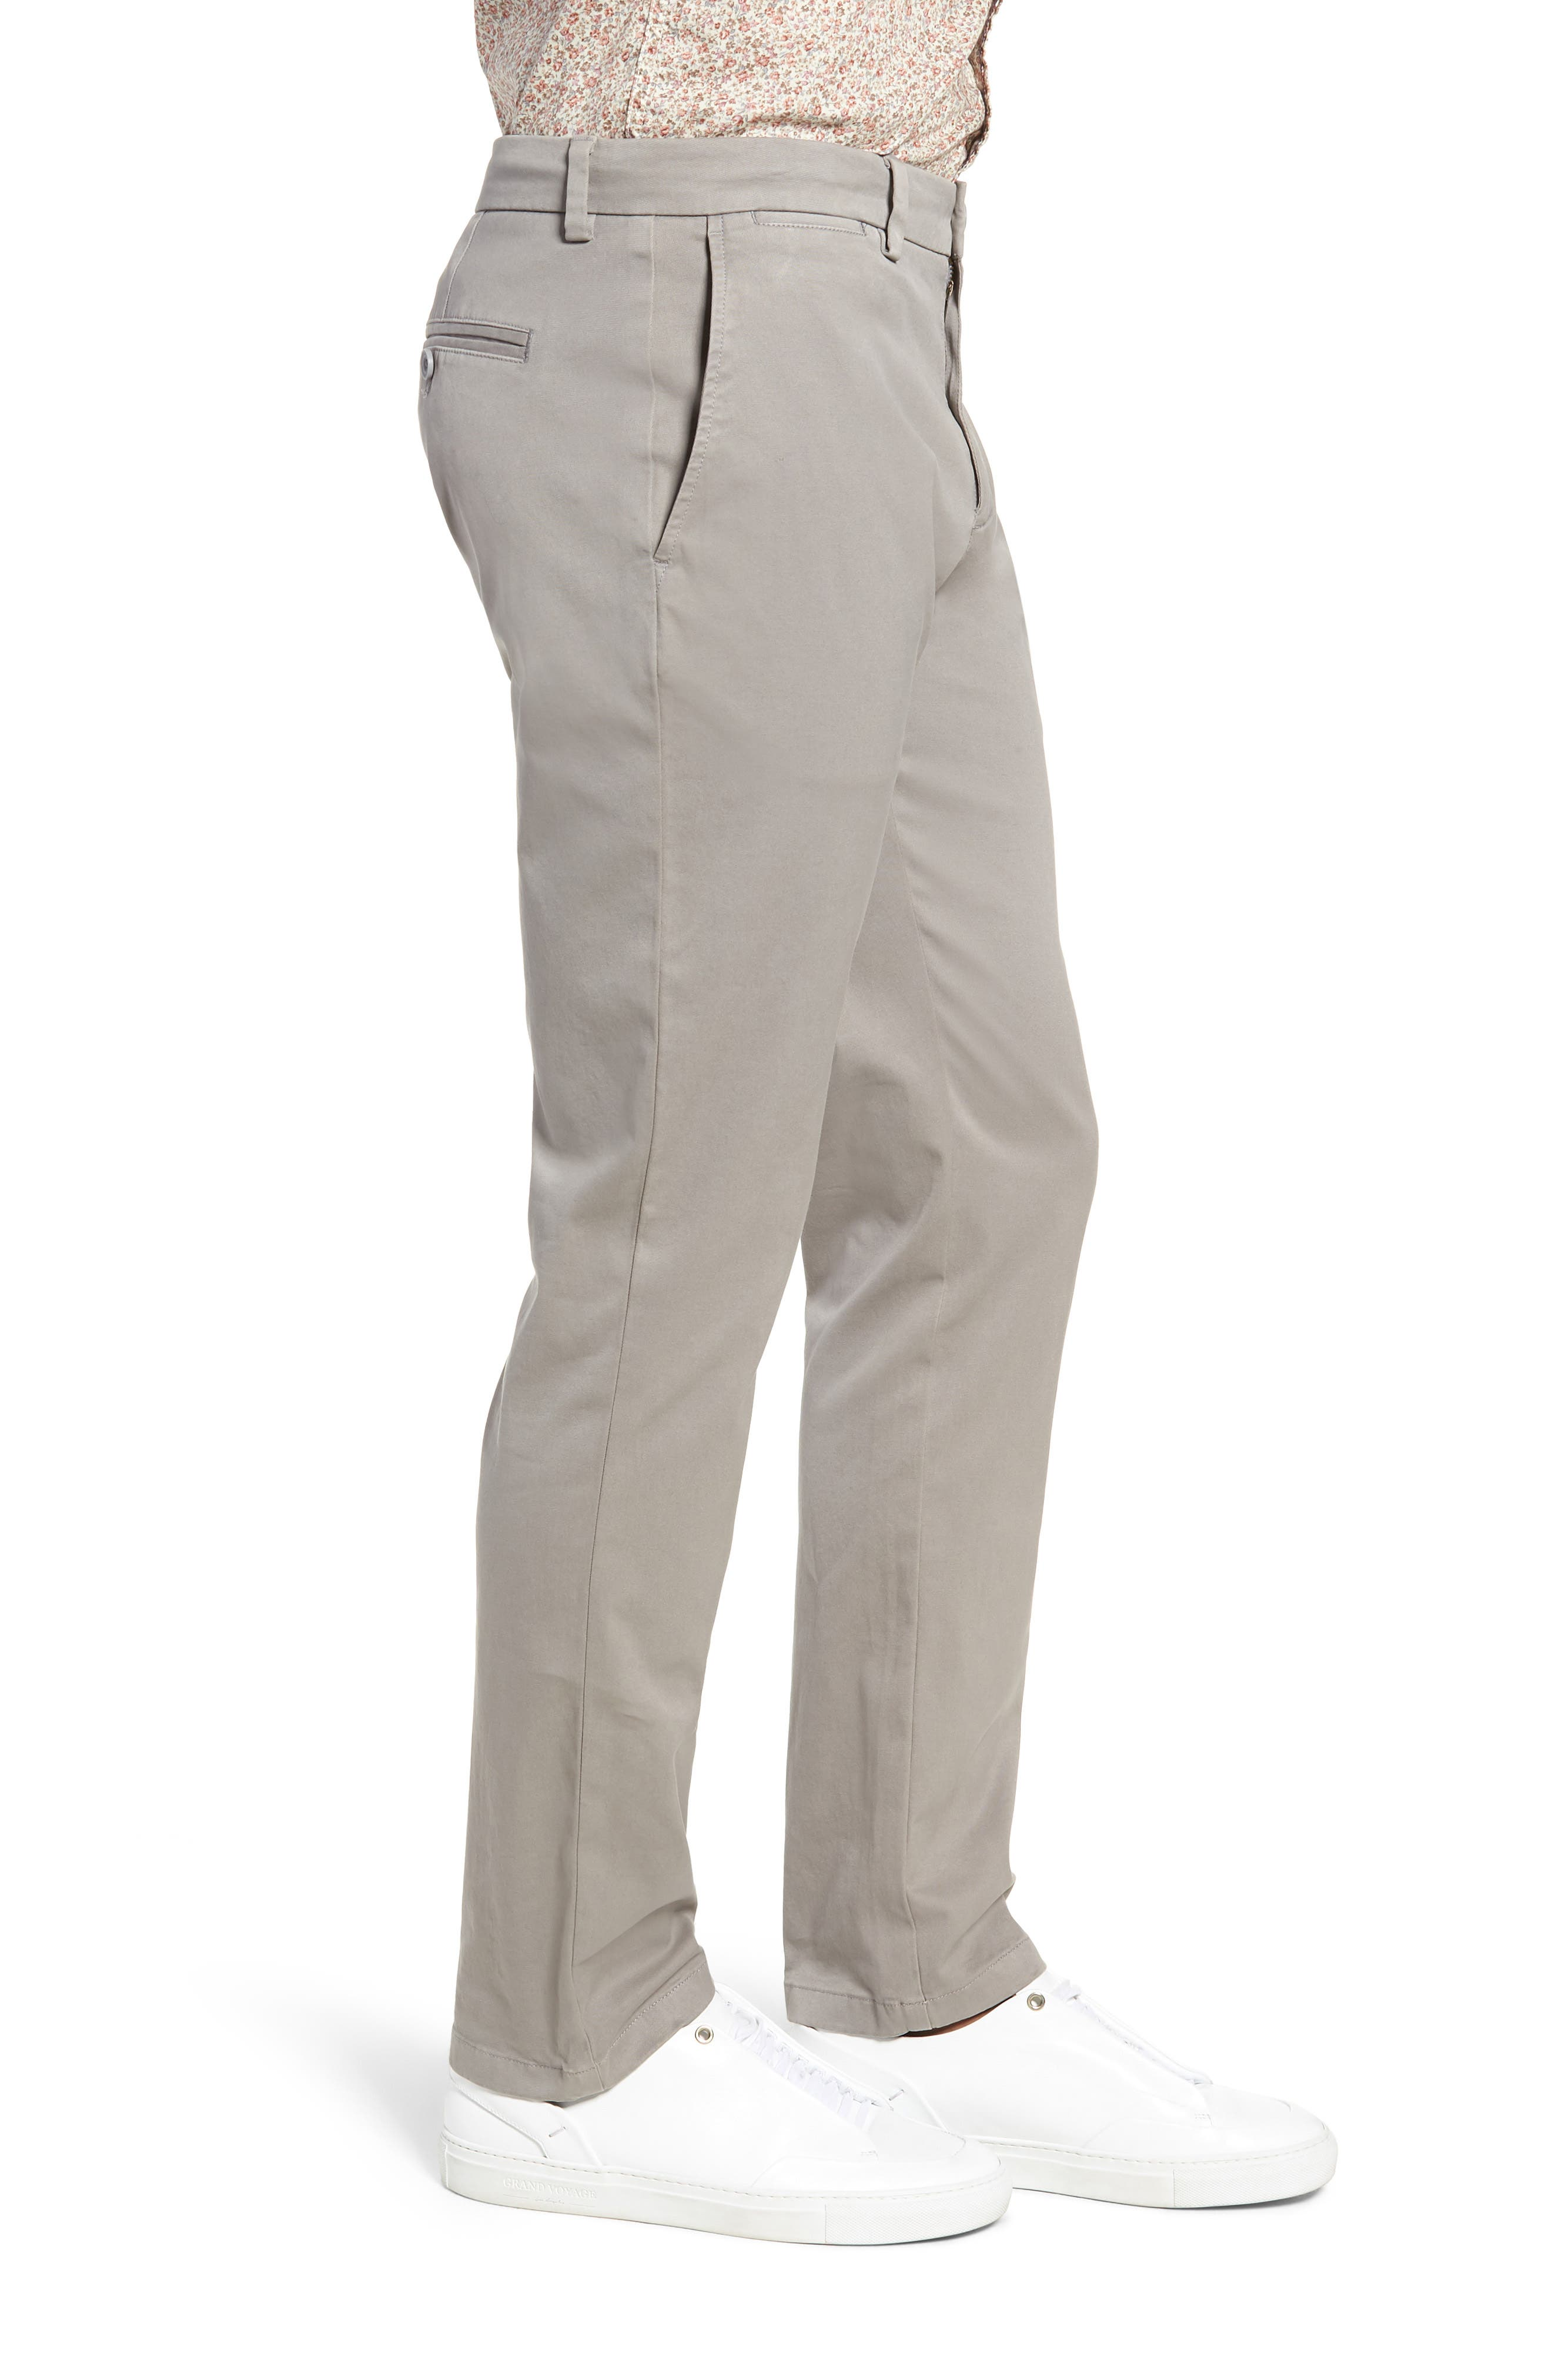 Stretch Slim Fit Pants,                             Alternate thumbnail 3, color,                             ANCHOR GREY